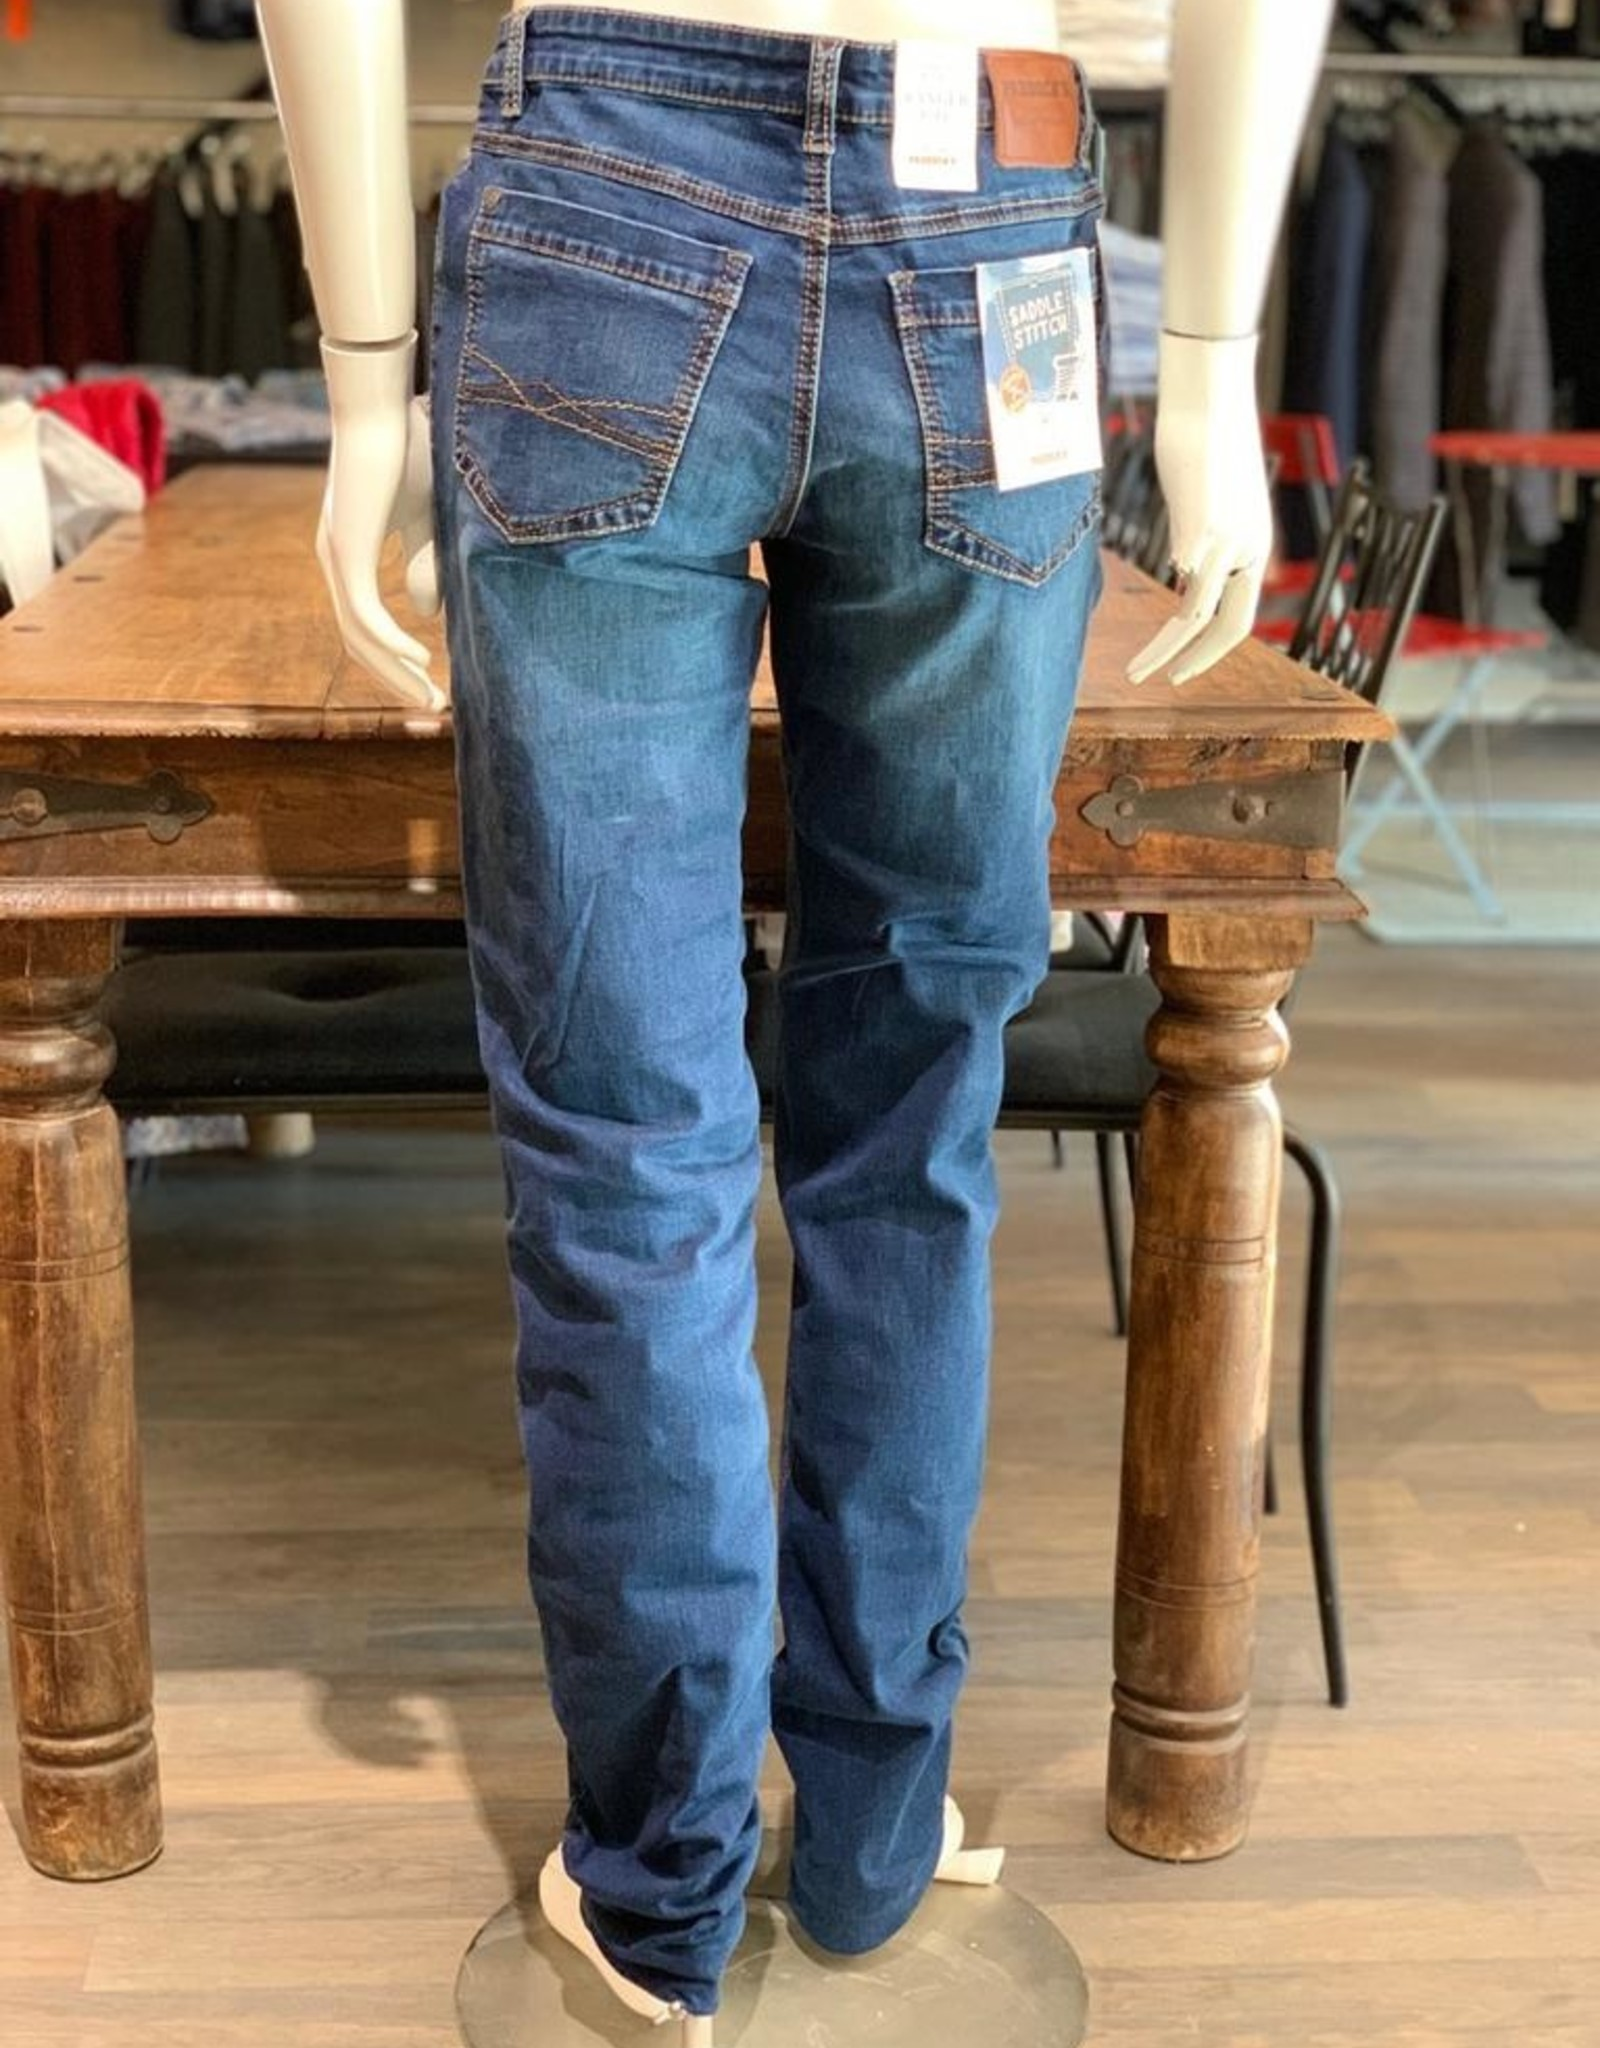 Paddock's Paddock's Ranger PIPE Saddle Stitch Motion and Comfort<br /> tight leg, low rise